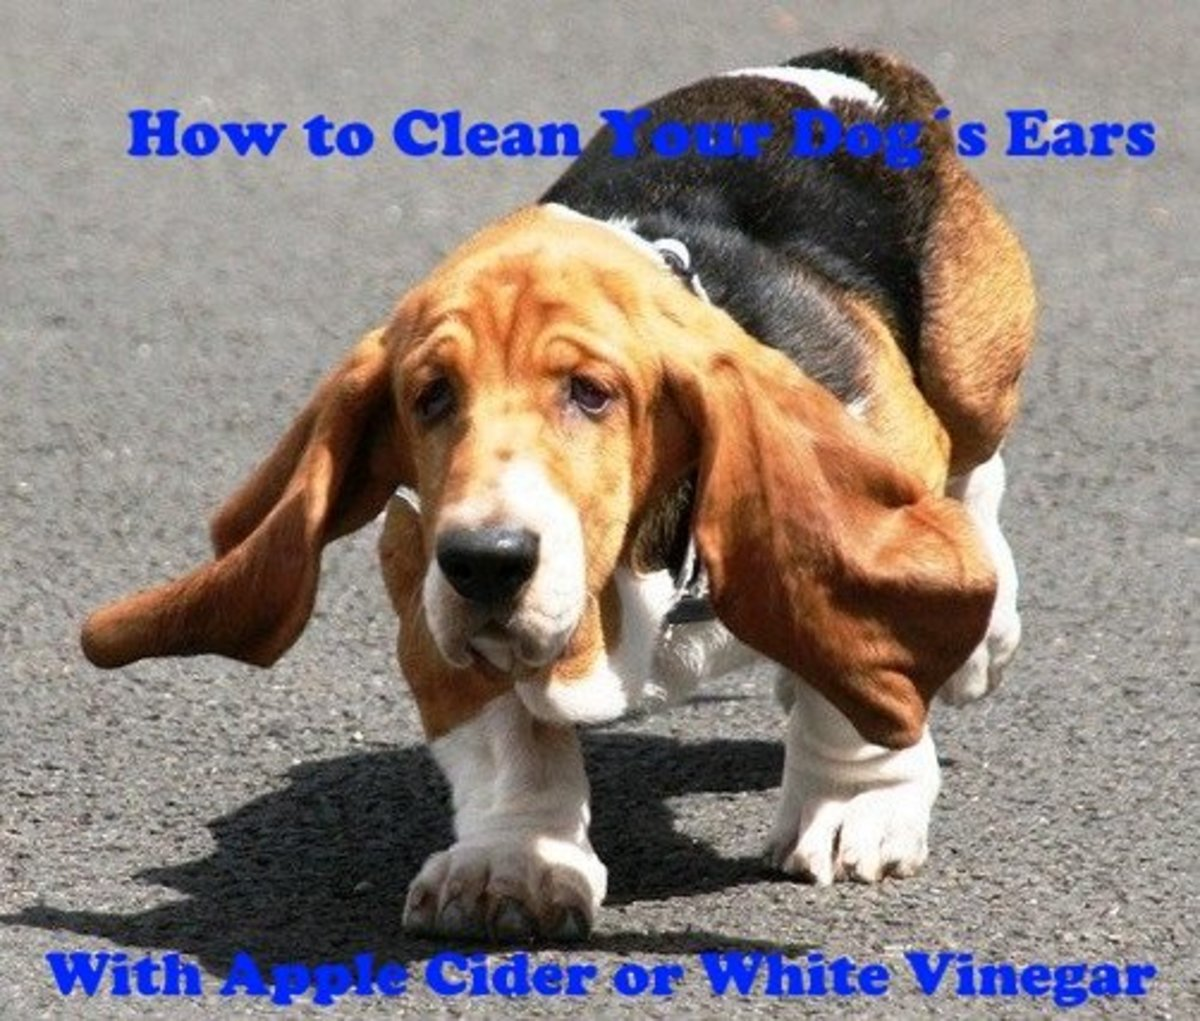 How to Clean Your Dog's Ears With Apple Cider or White Vinegar